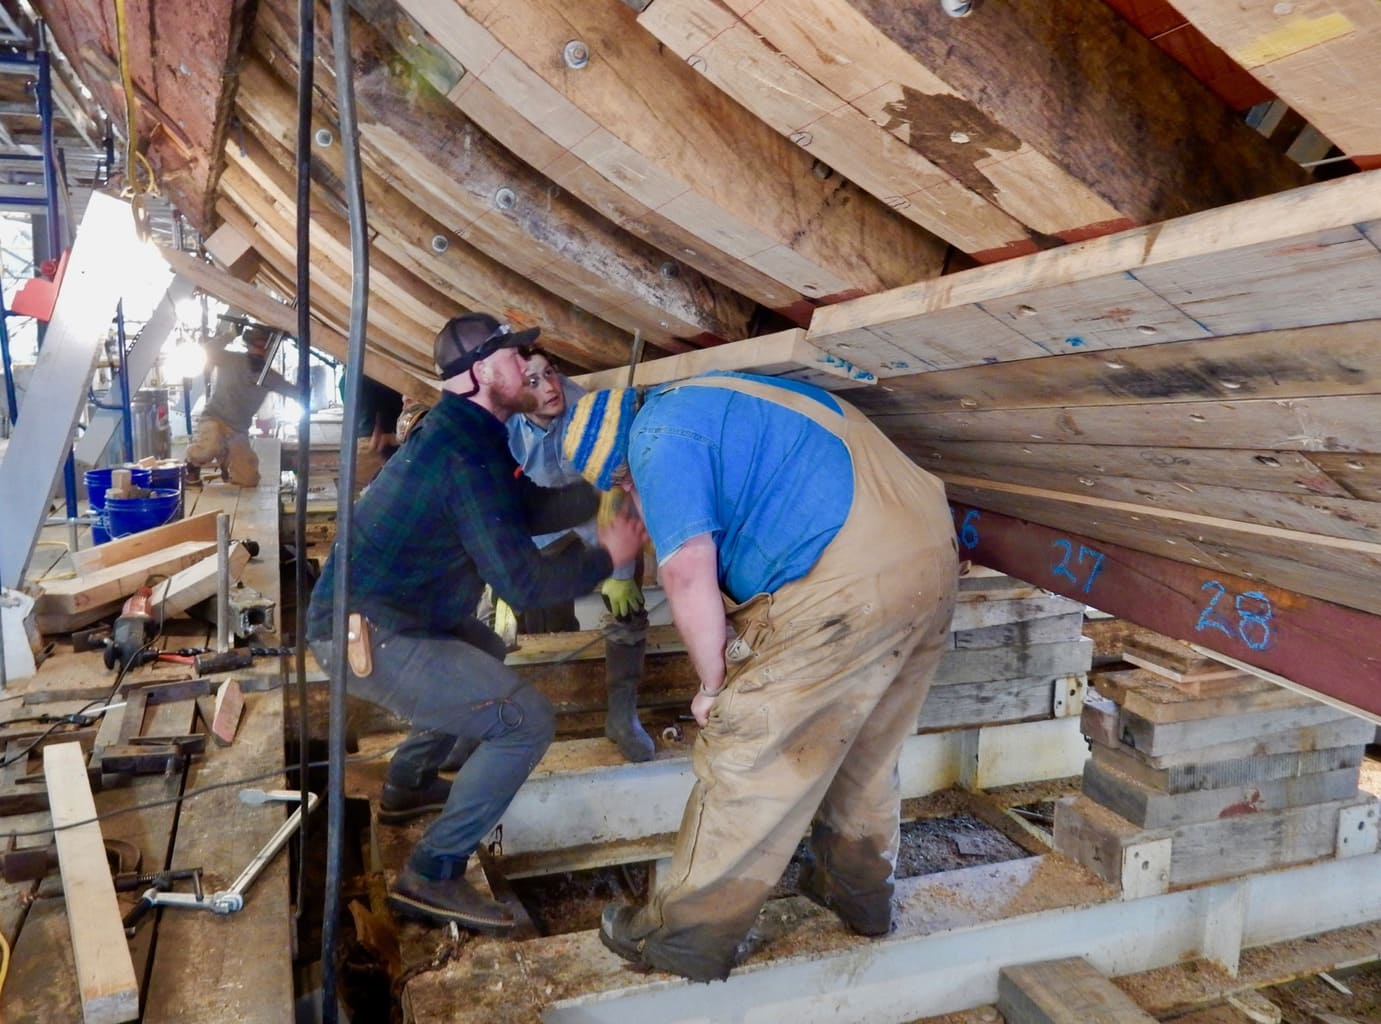 Using back-power to line up boards on Mayflower II hull, Mystic Seaport CT